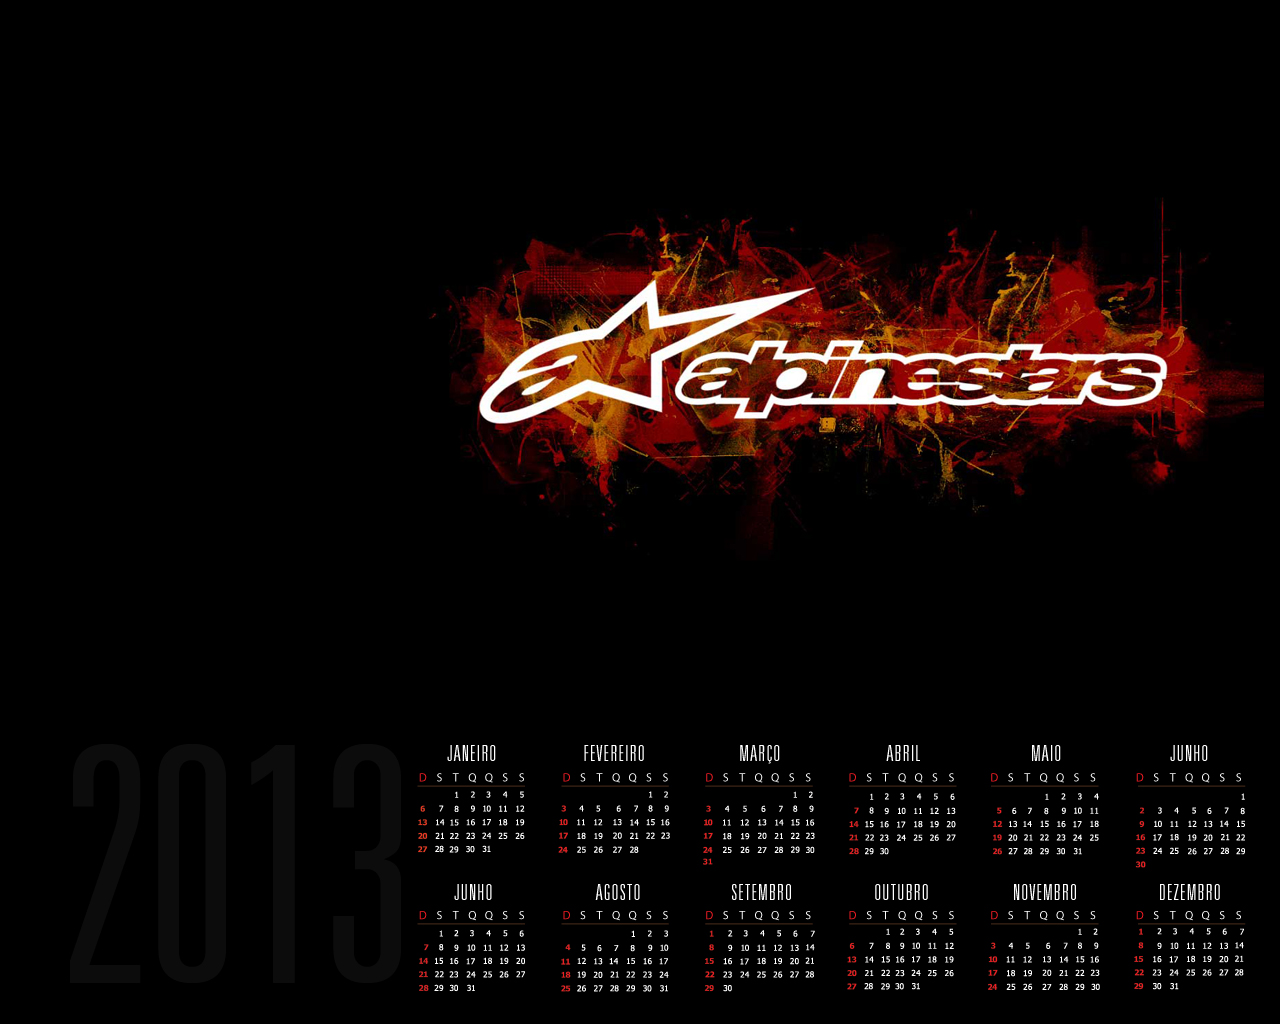 Related Pictures alpinestars wallpaper 1280x1024